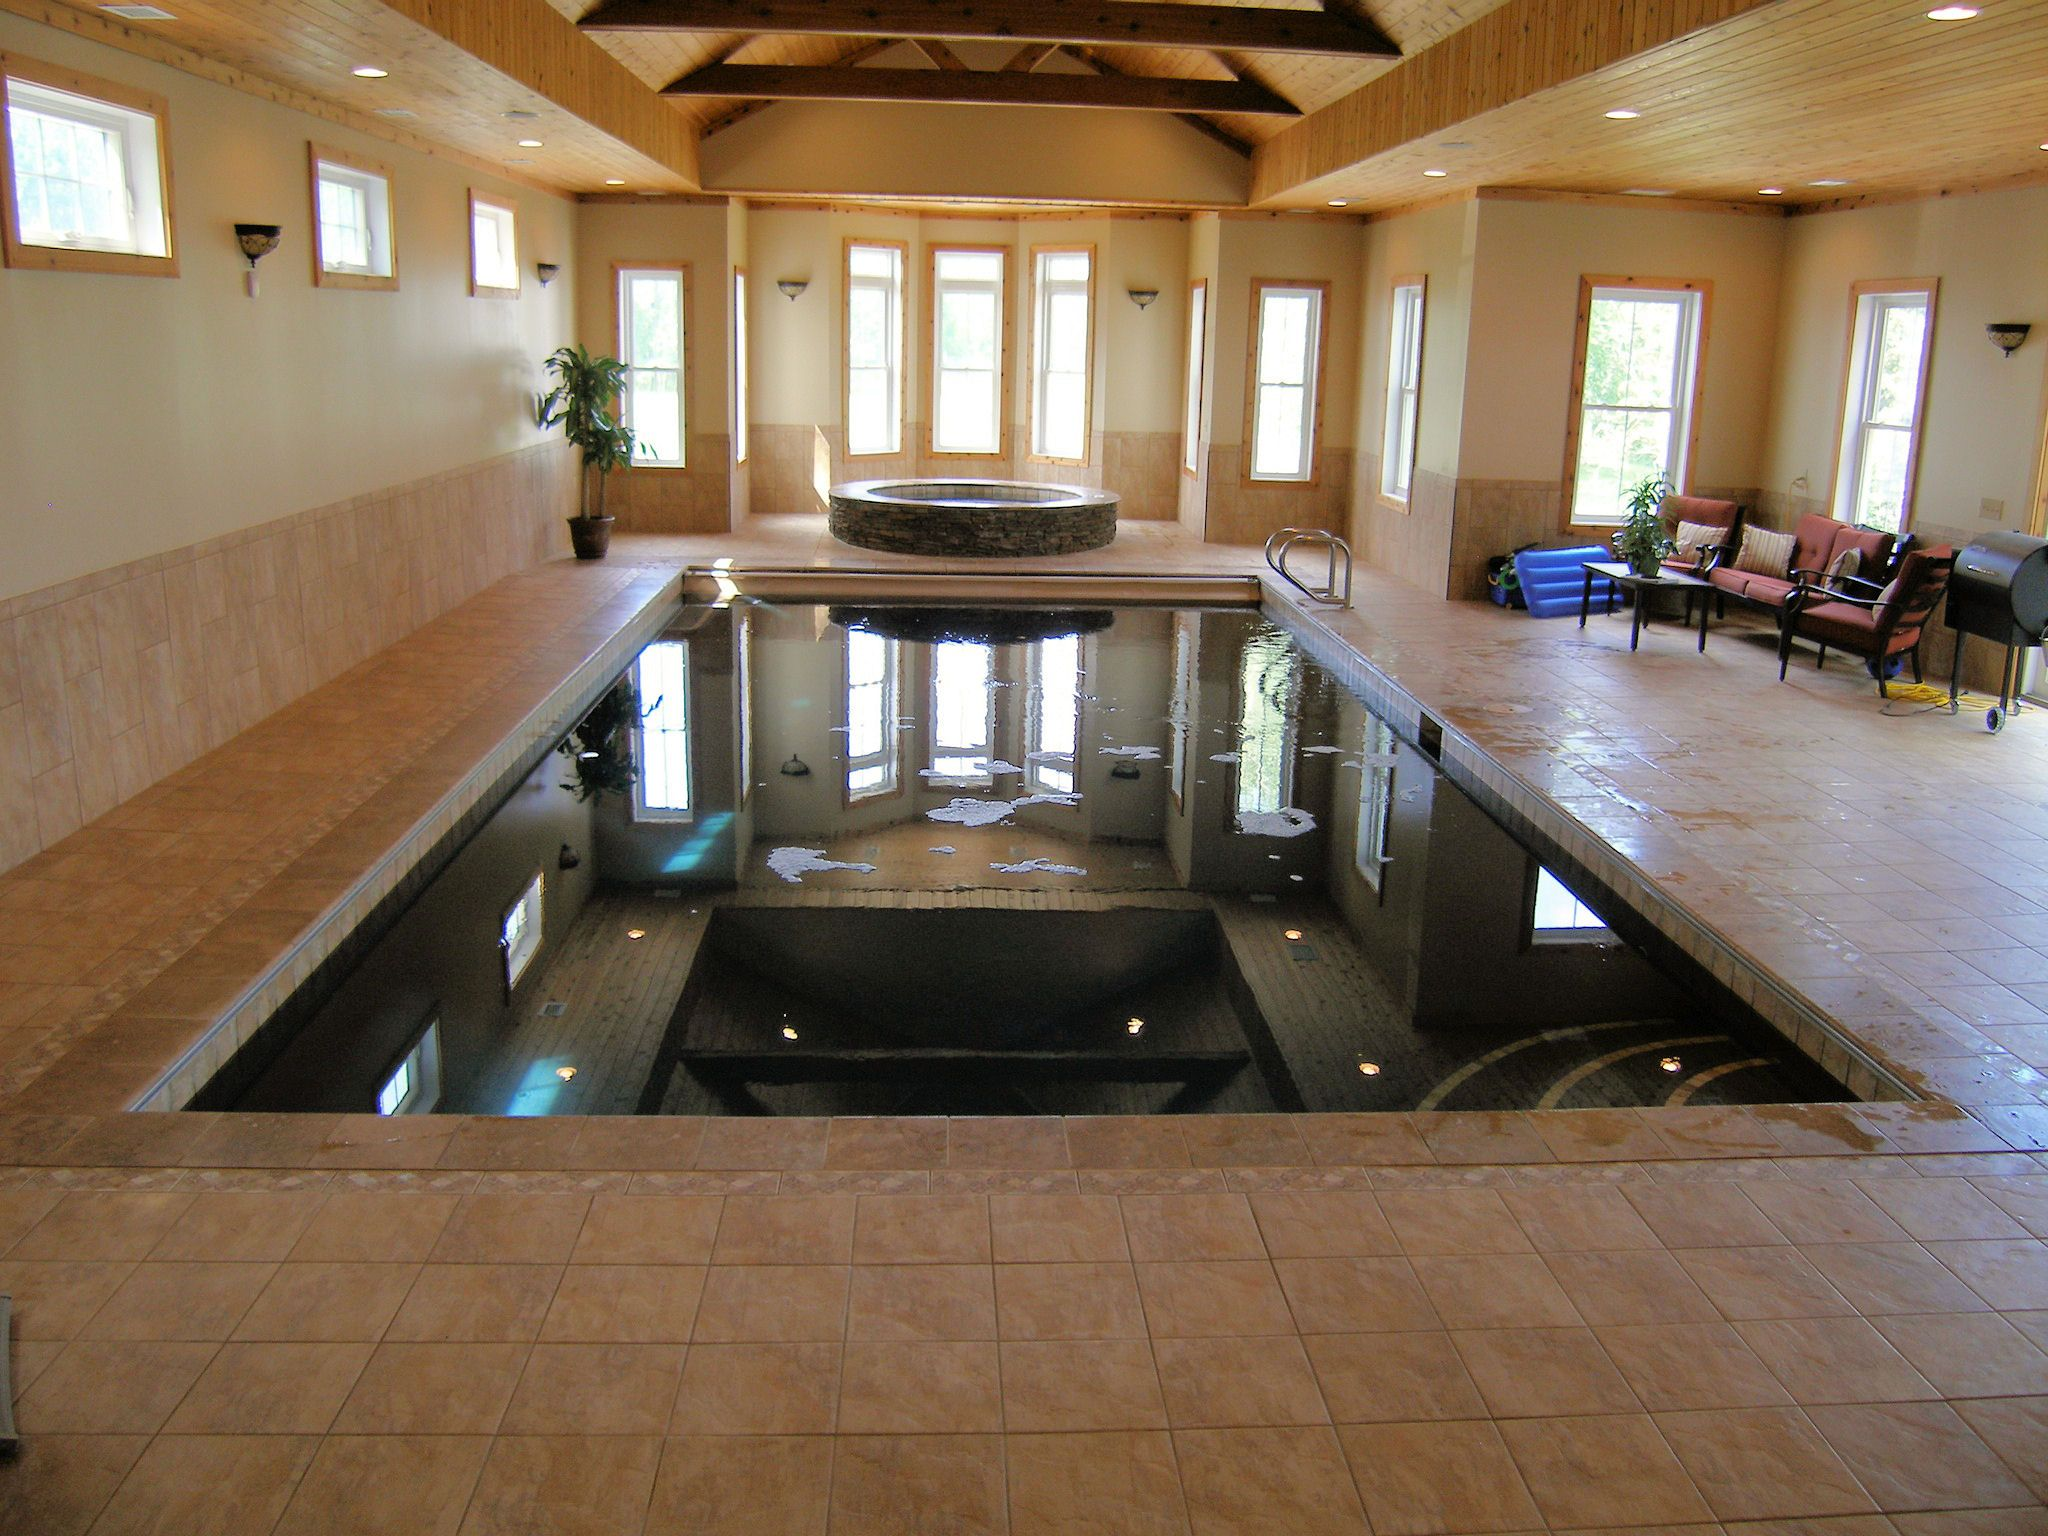 16x32 rectangle gunite indoor swimming pool with 7ft spa